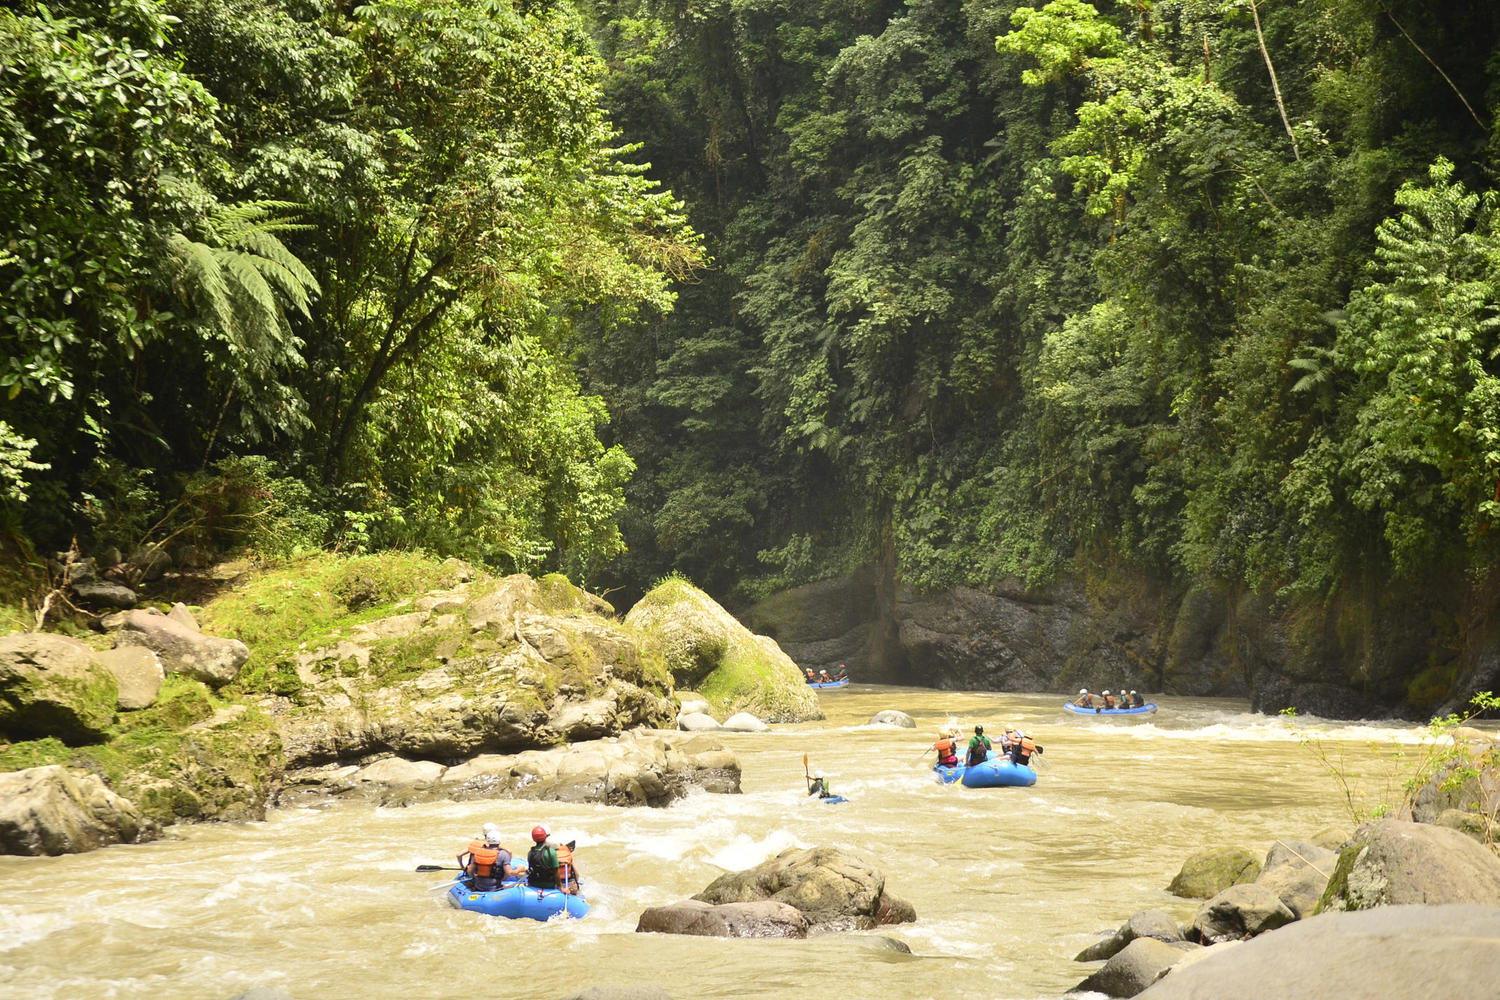 Entering the Pacuare River gorge